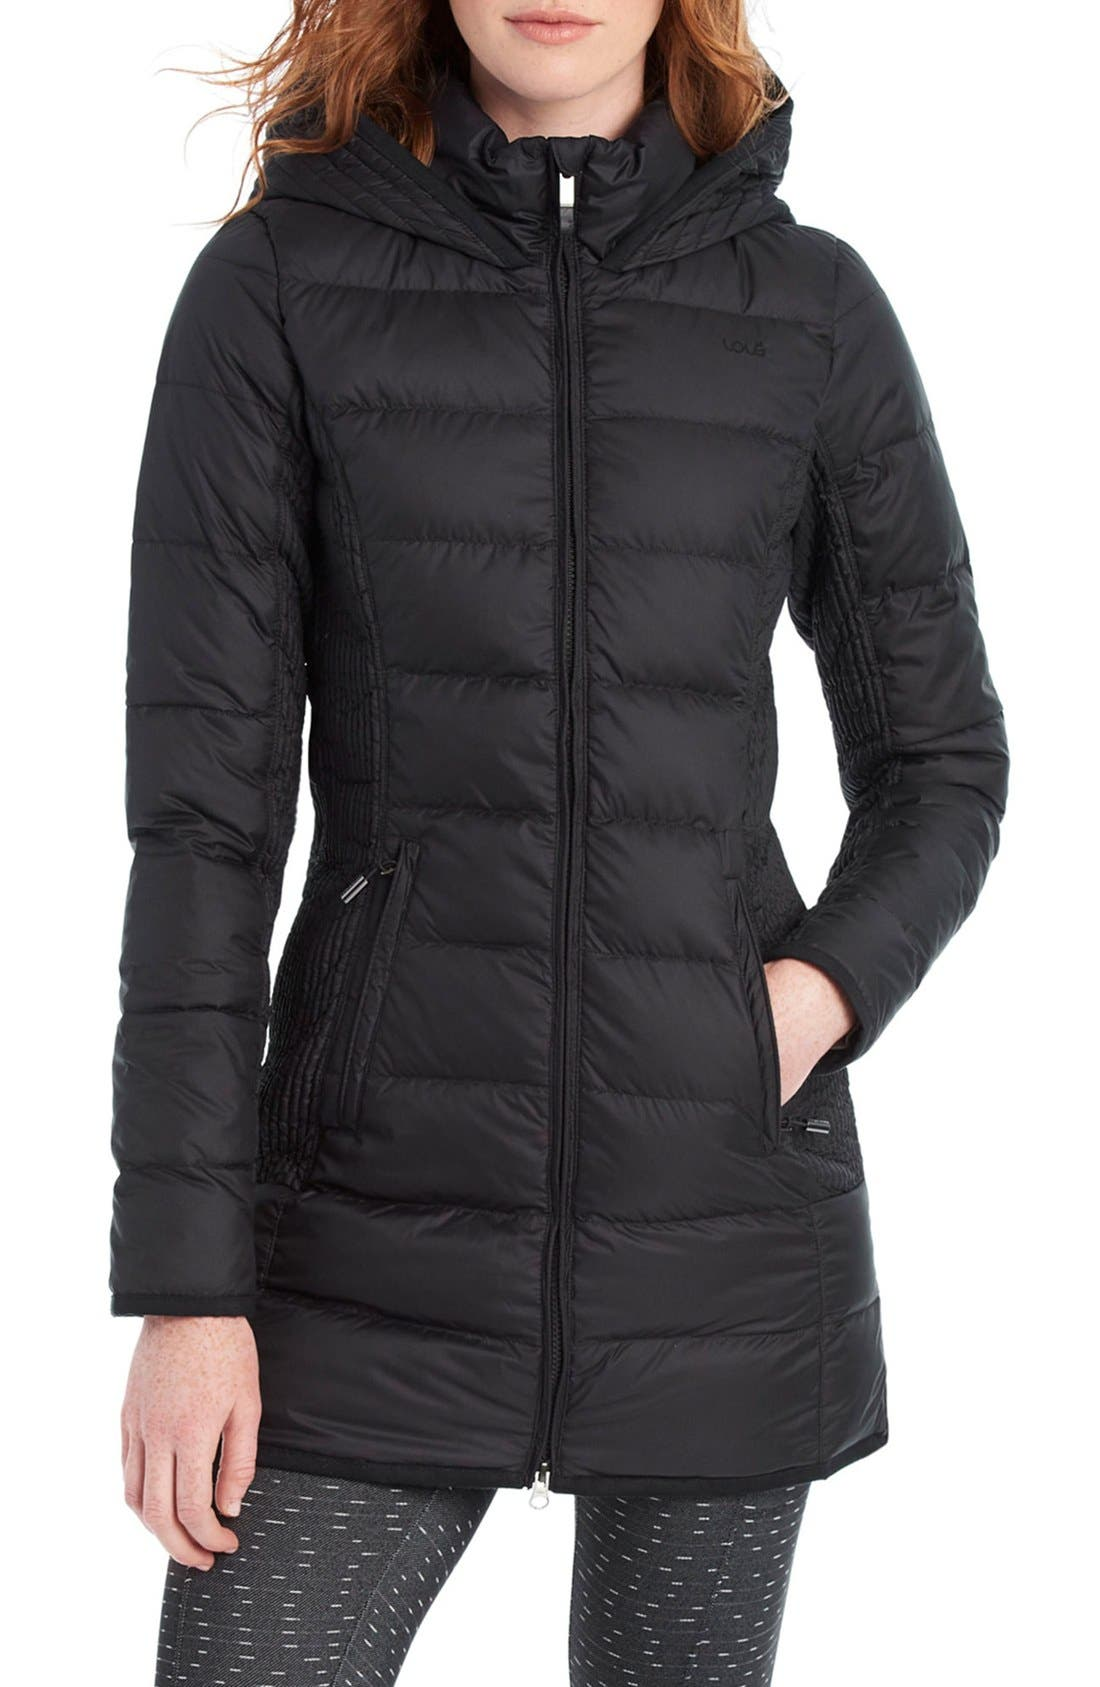 LOLE 'Gisele' Water Resistant Quilted Jacket, Main, color, 001